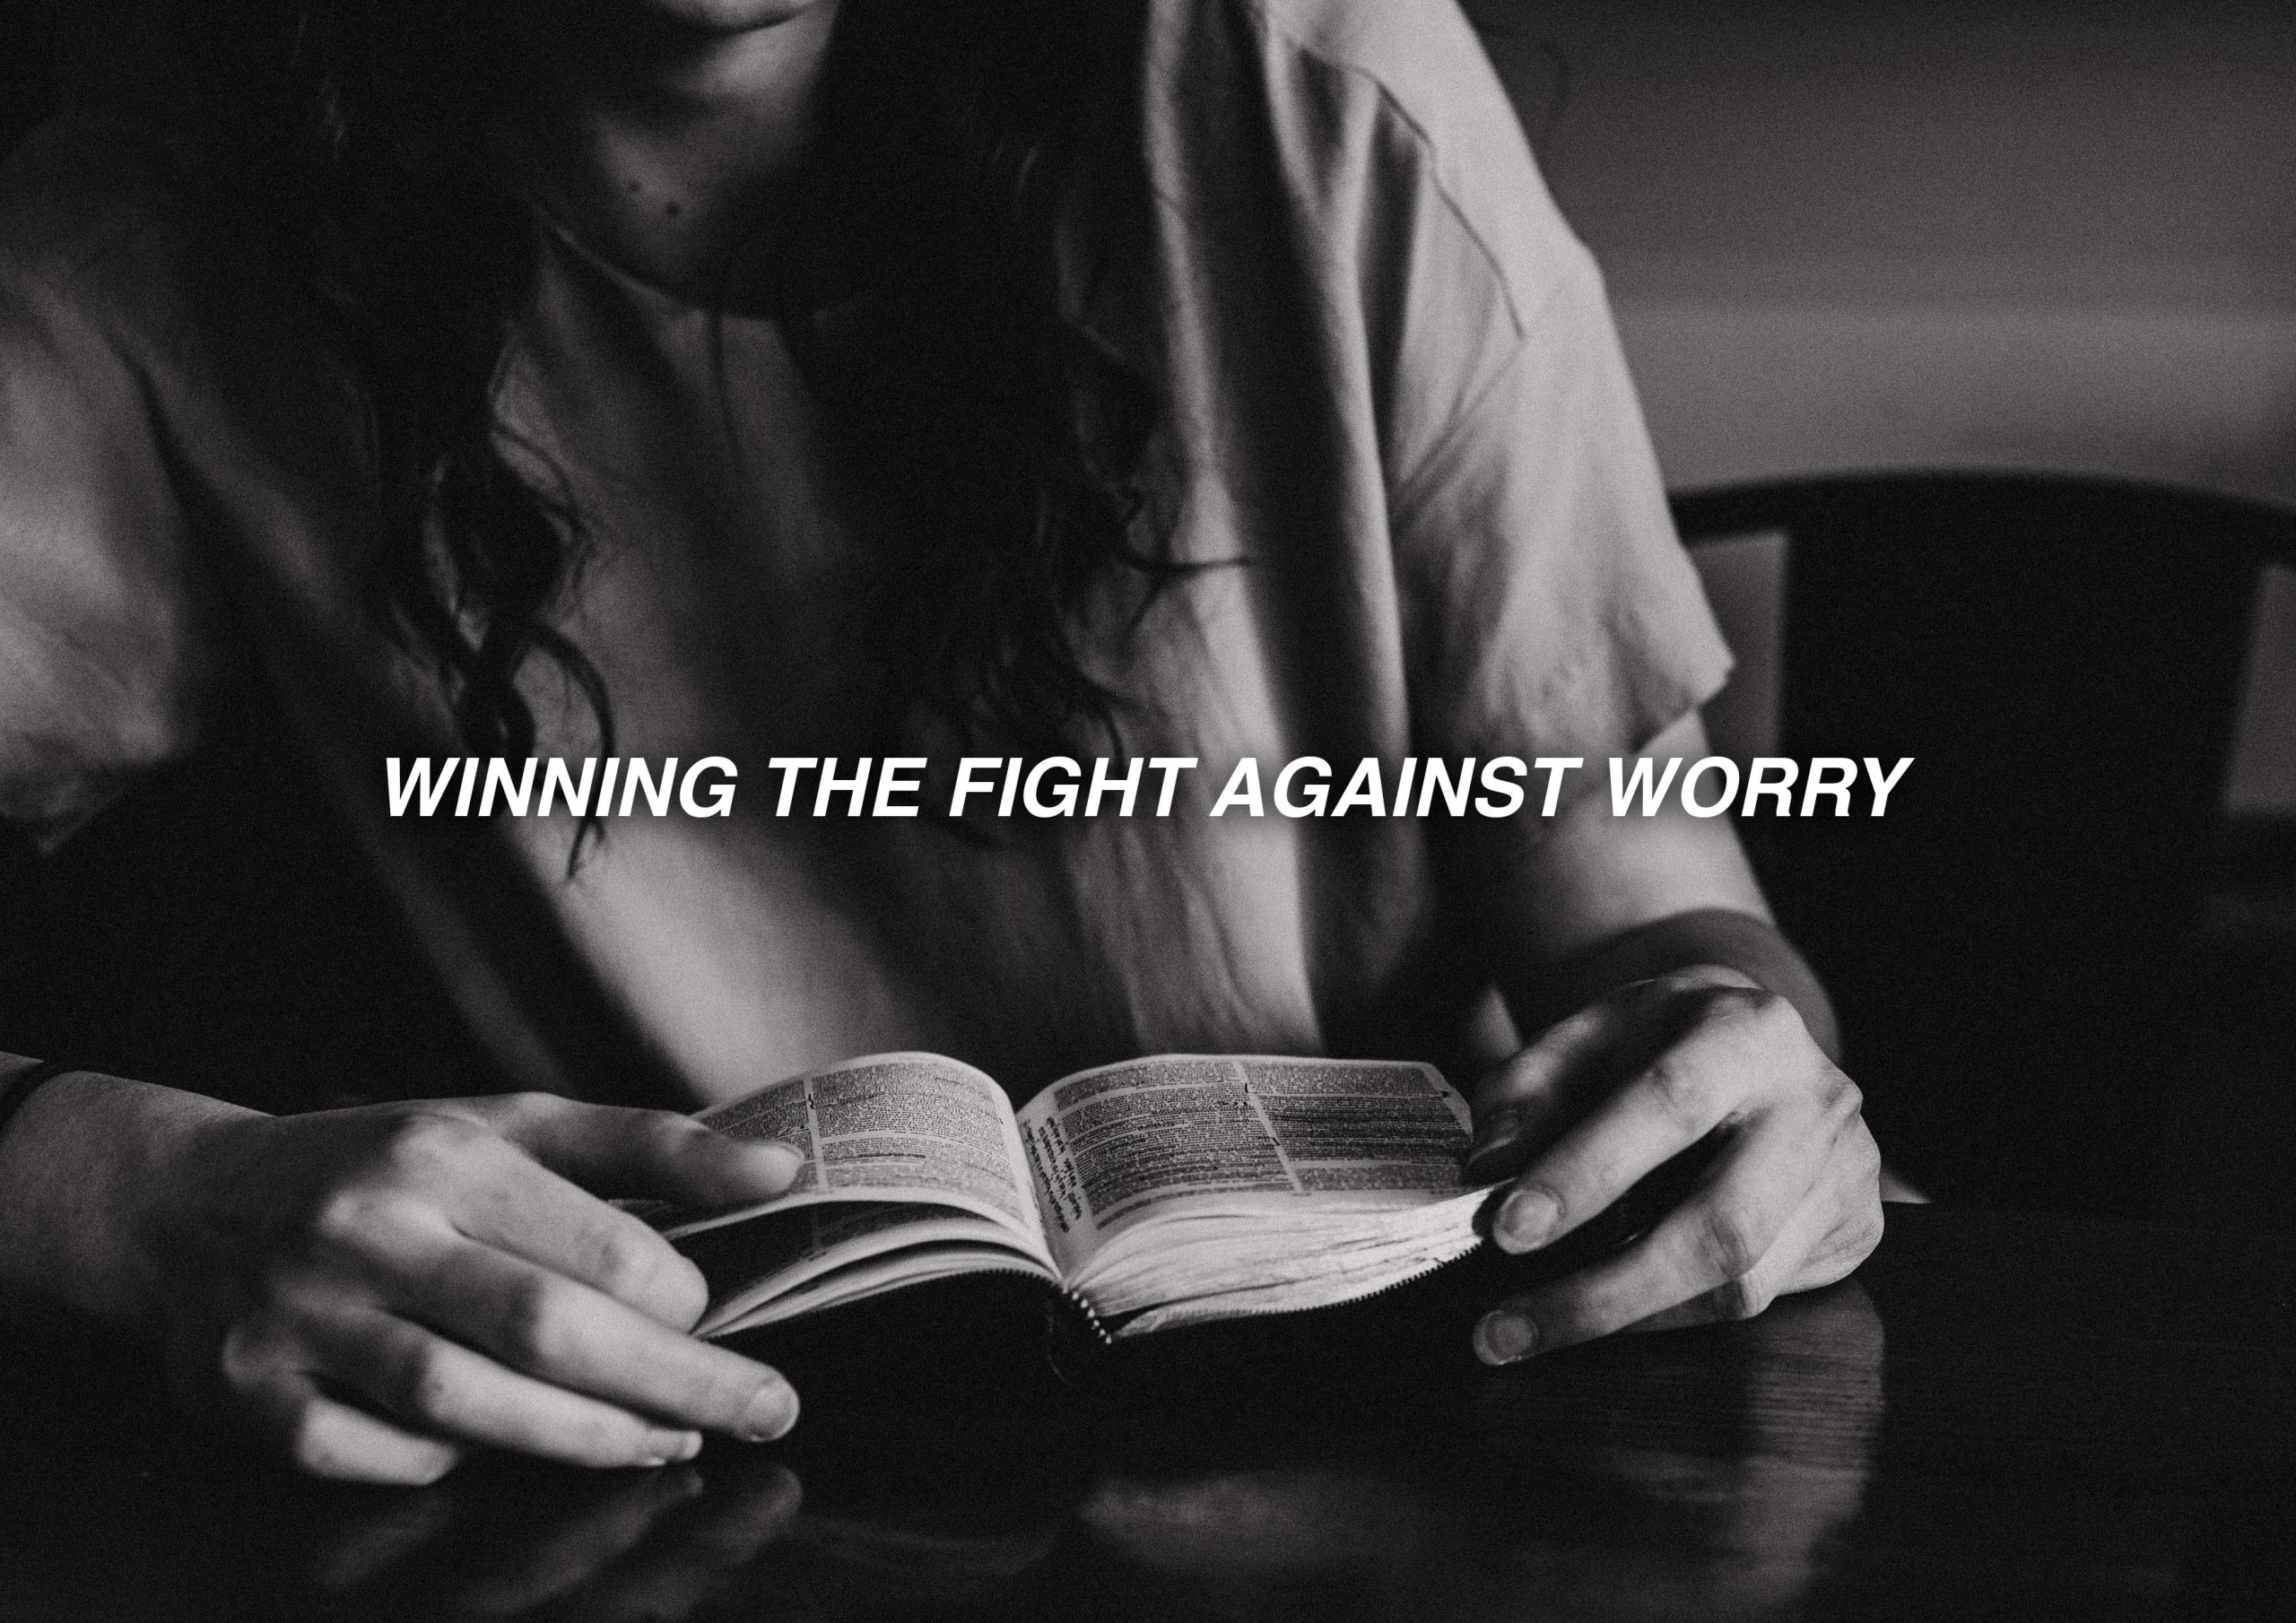 Winning the fight against worry